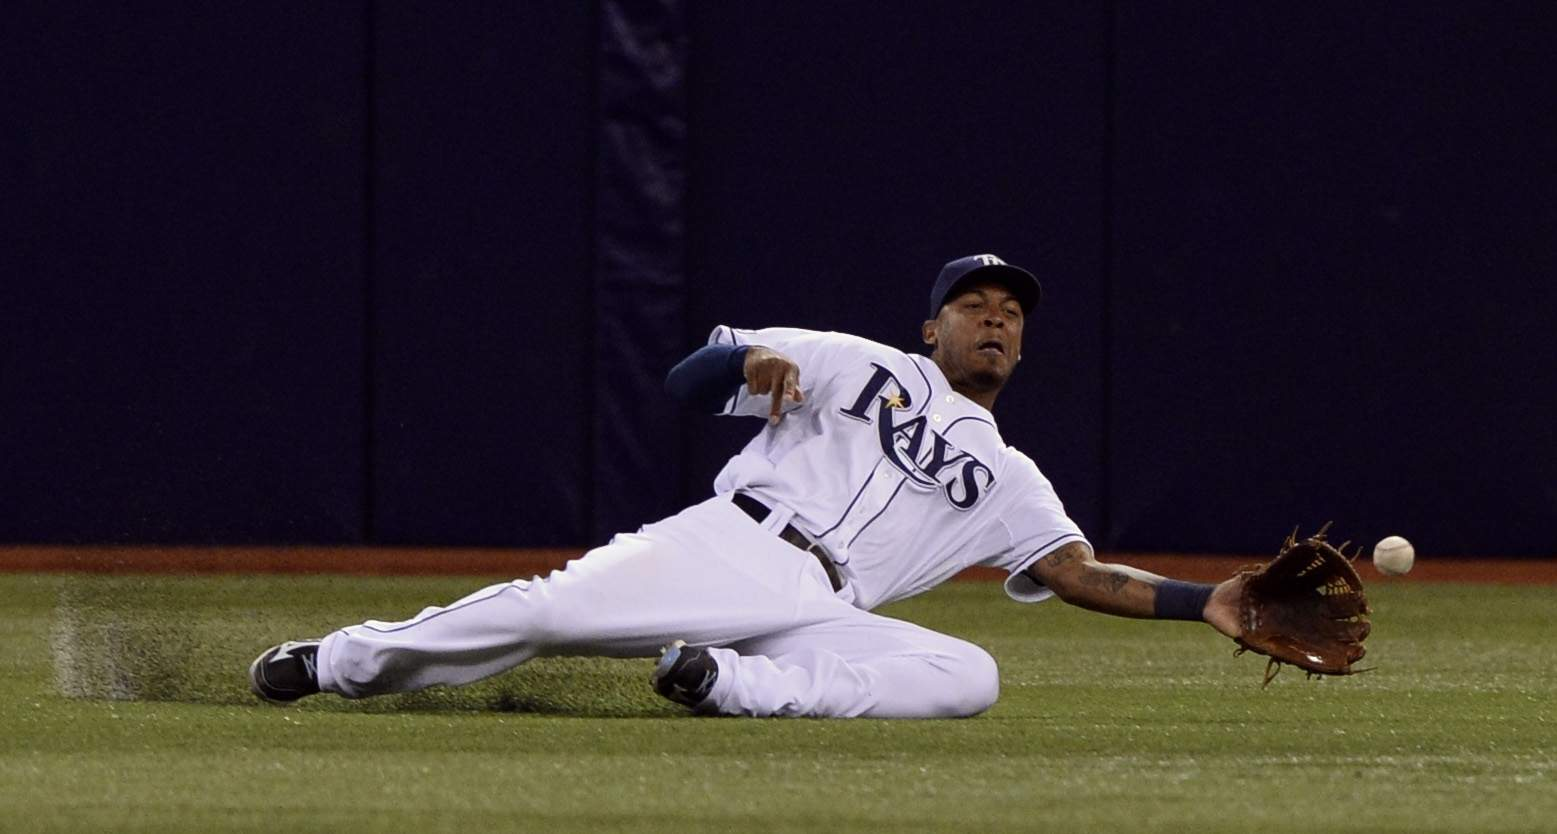 The Tampa Bay Rays will release OF Desmond Jennings on Saturday. (Photo Credit: Unknown)